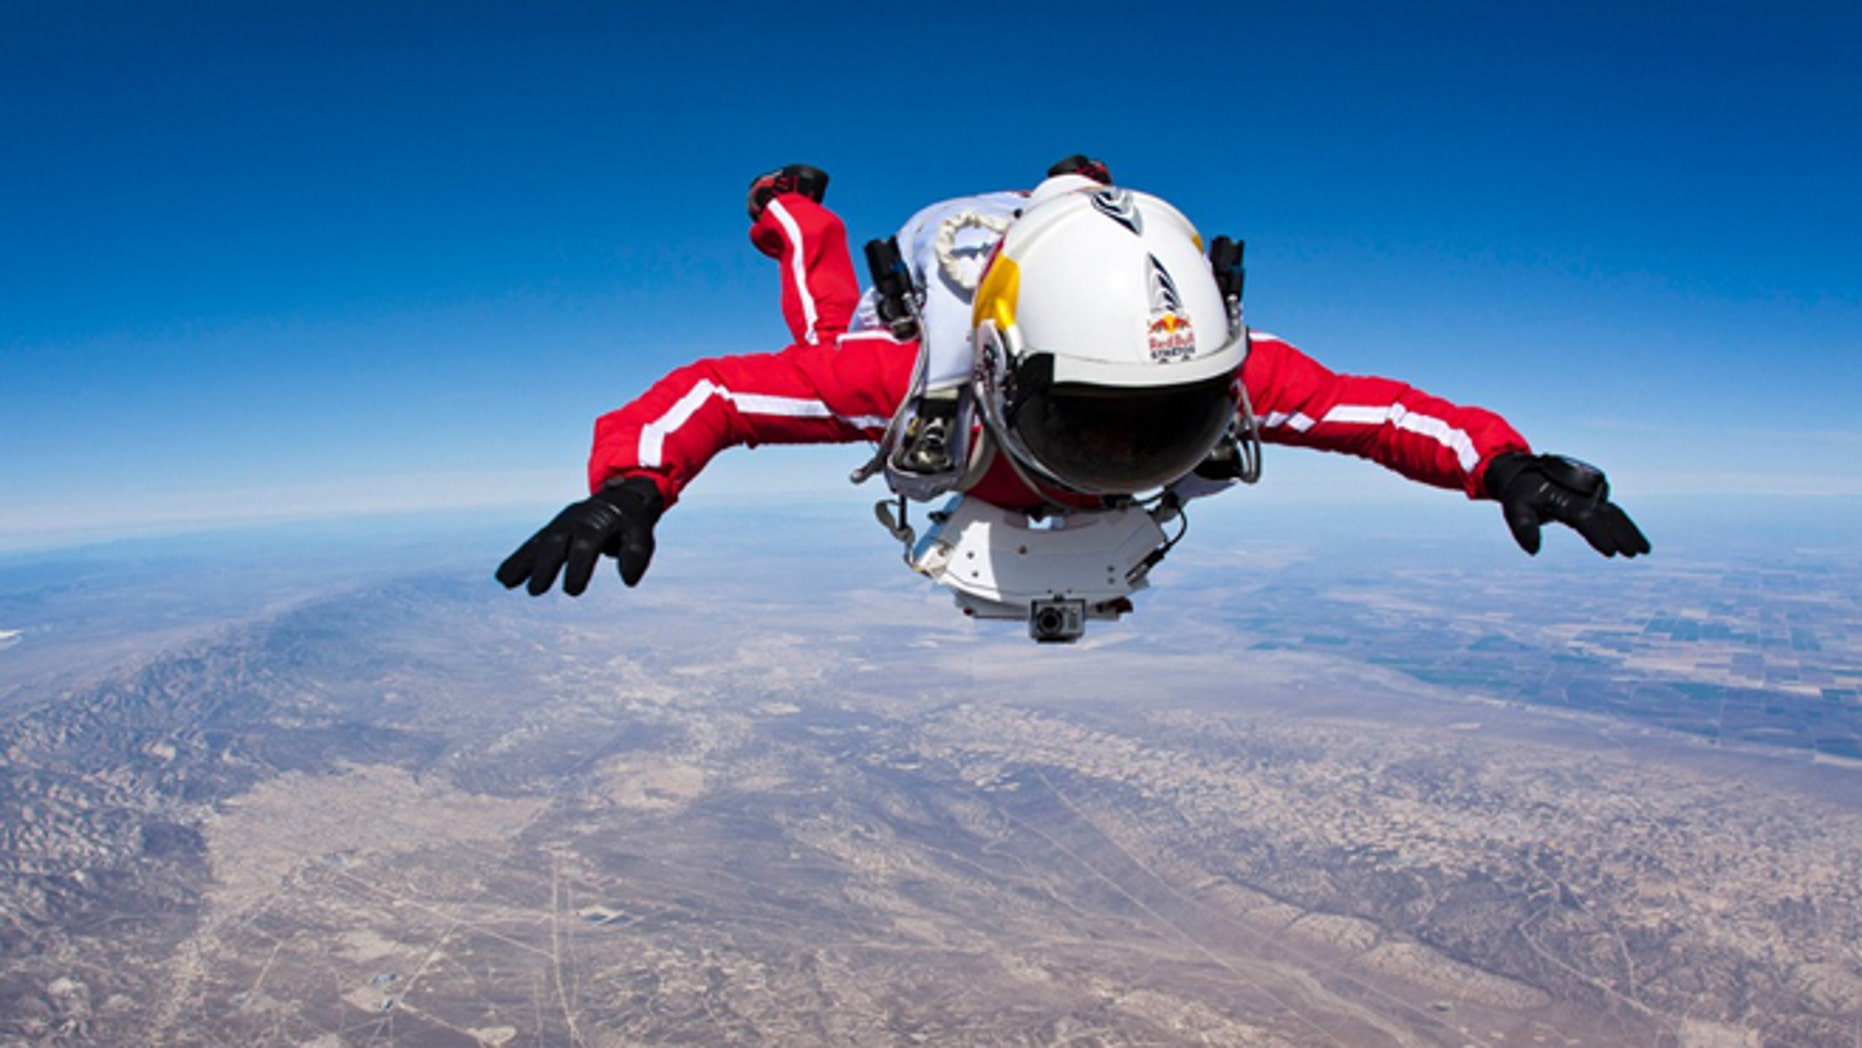 Felix Baumgartner has just completed a series of high-altitude test jumps in California to wrap up the development phase of his Red Bull Stratos project.